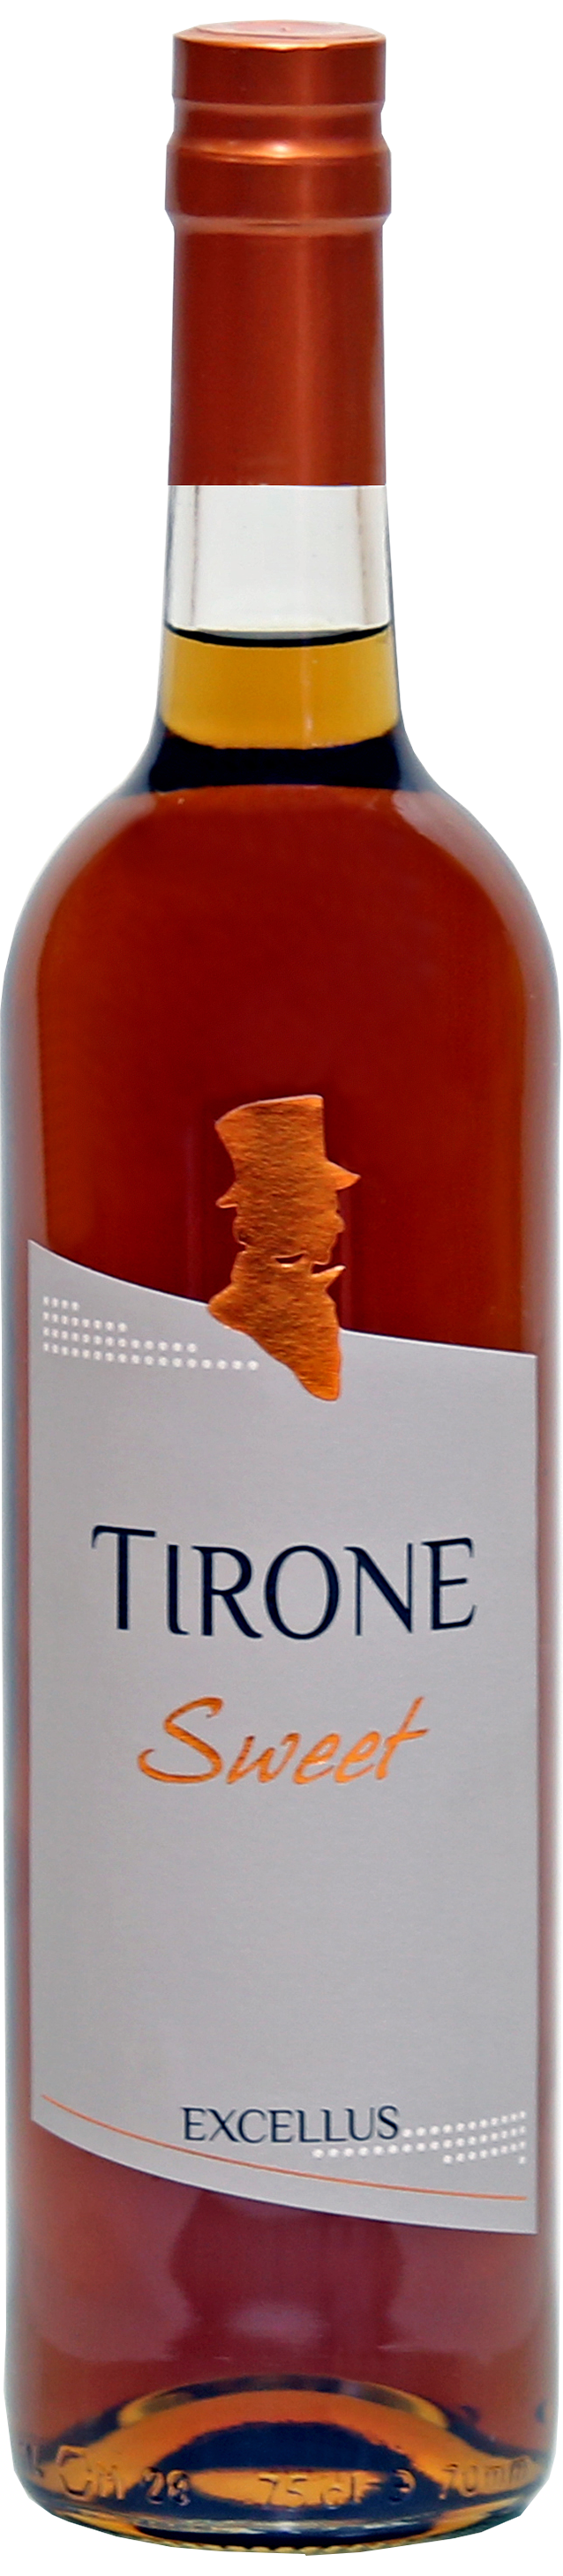 Tirone Sweet